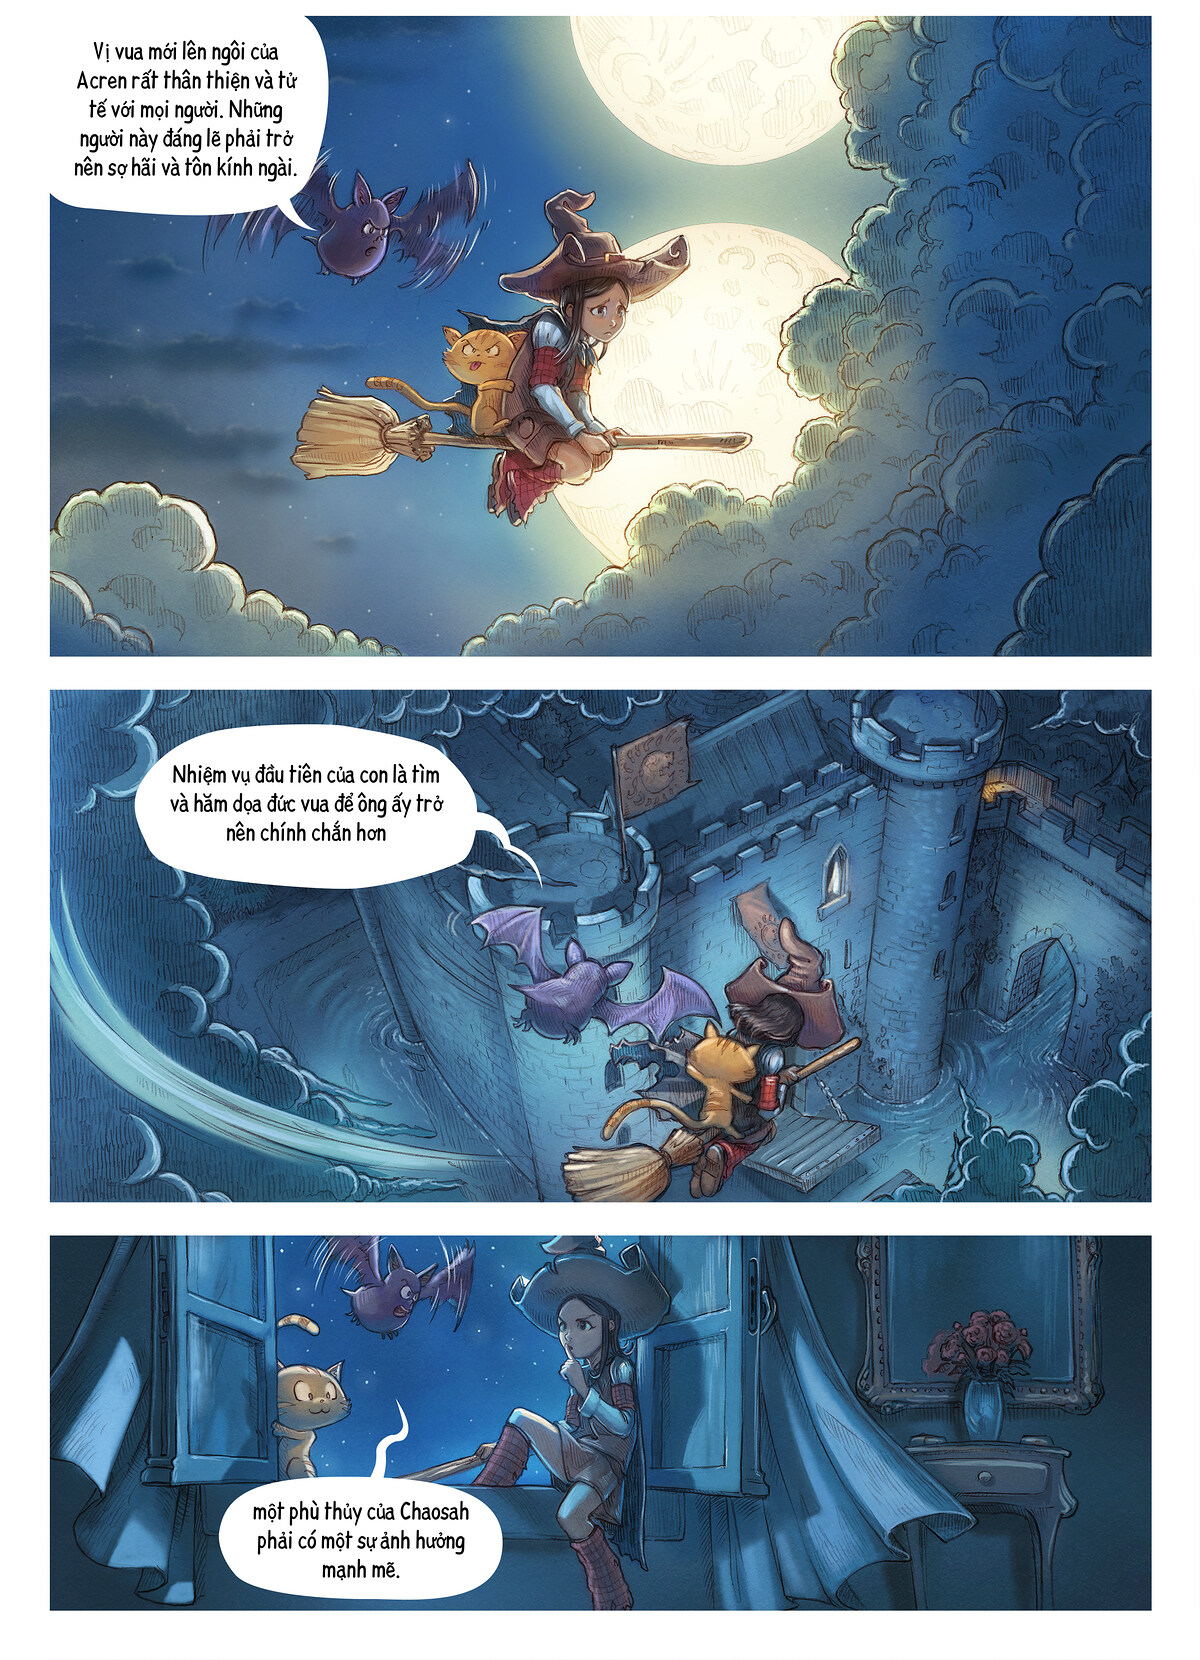 A webcomic page of Pepper&Carrot, Tập 11 [vi], trang 3